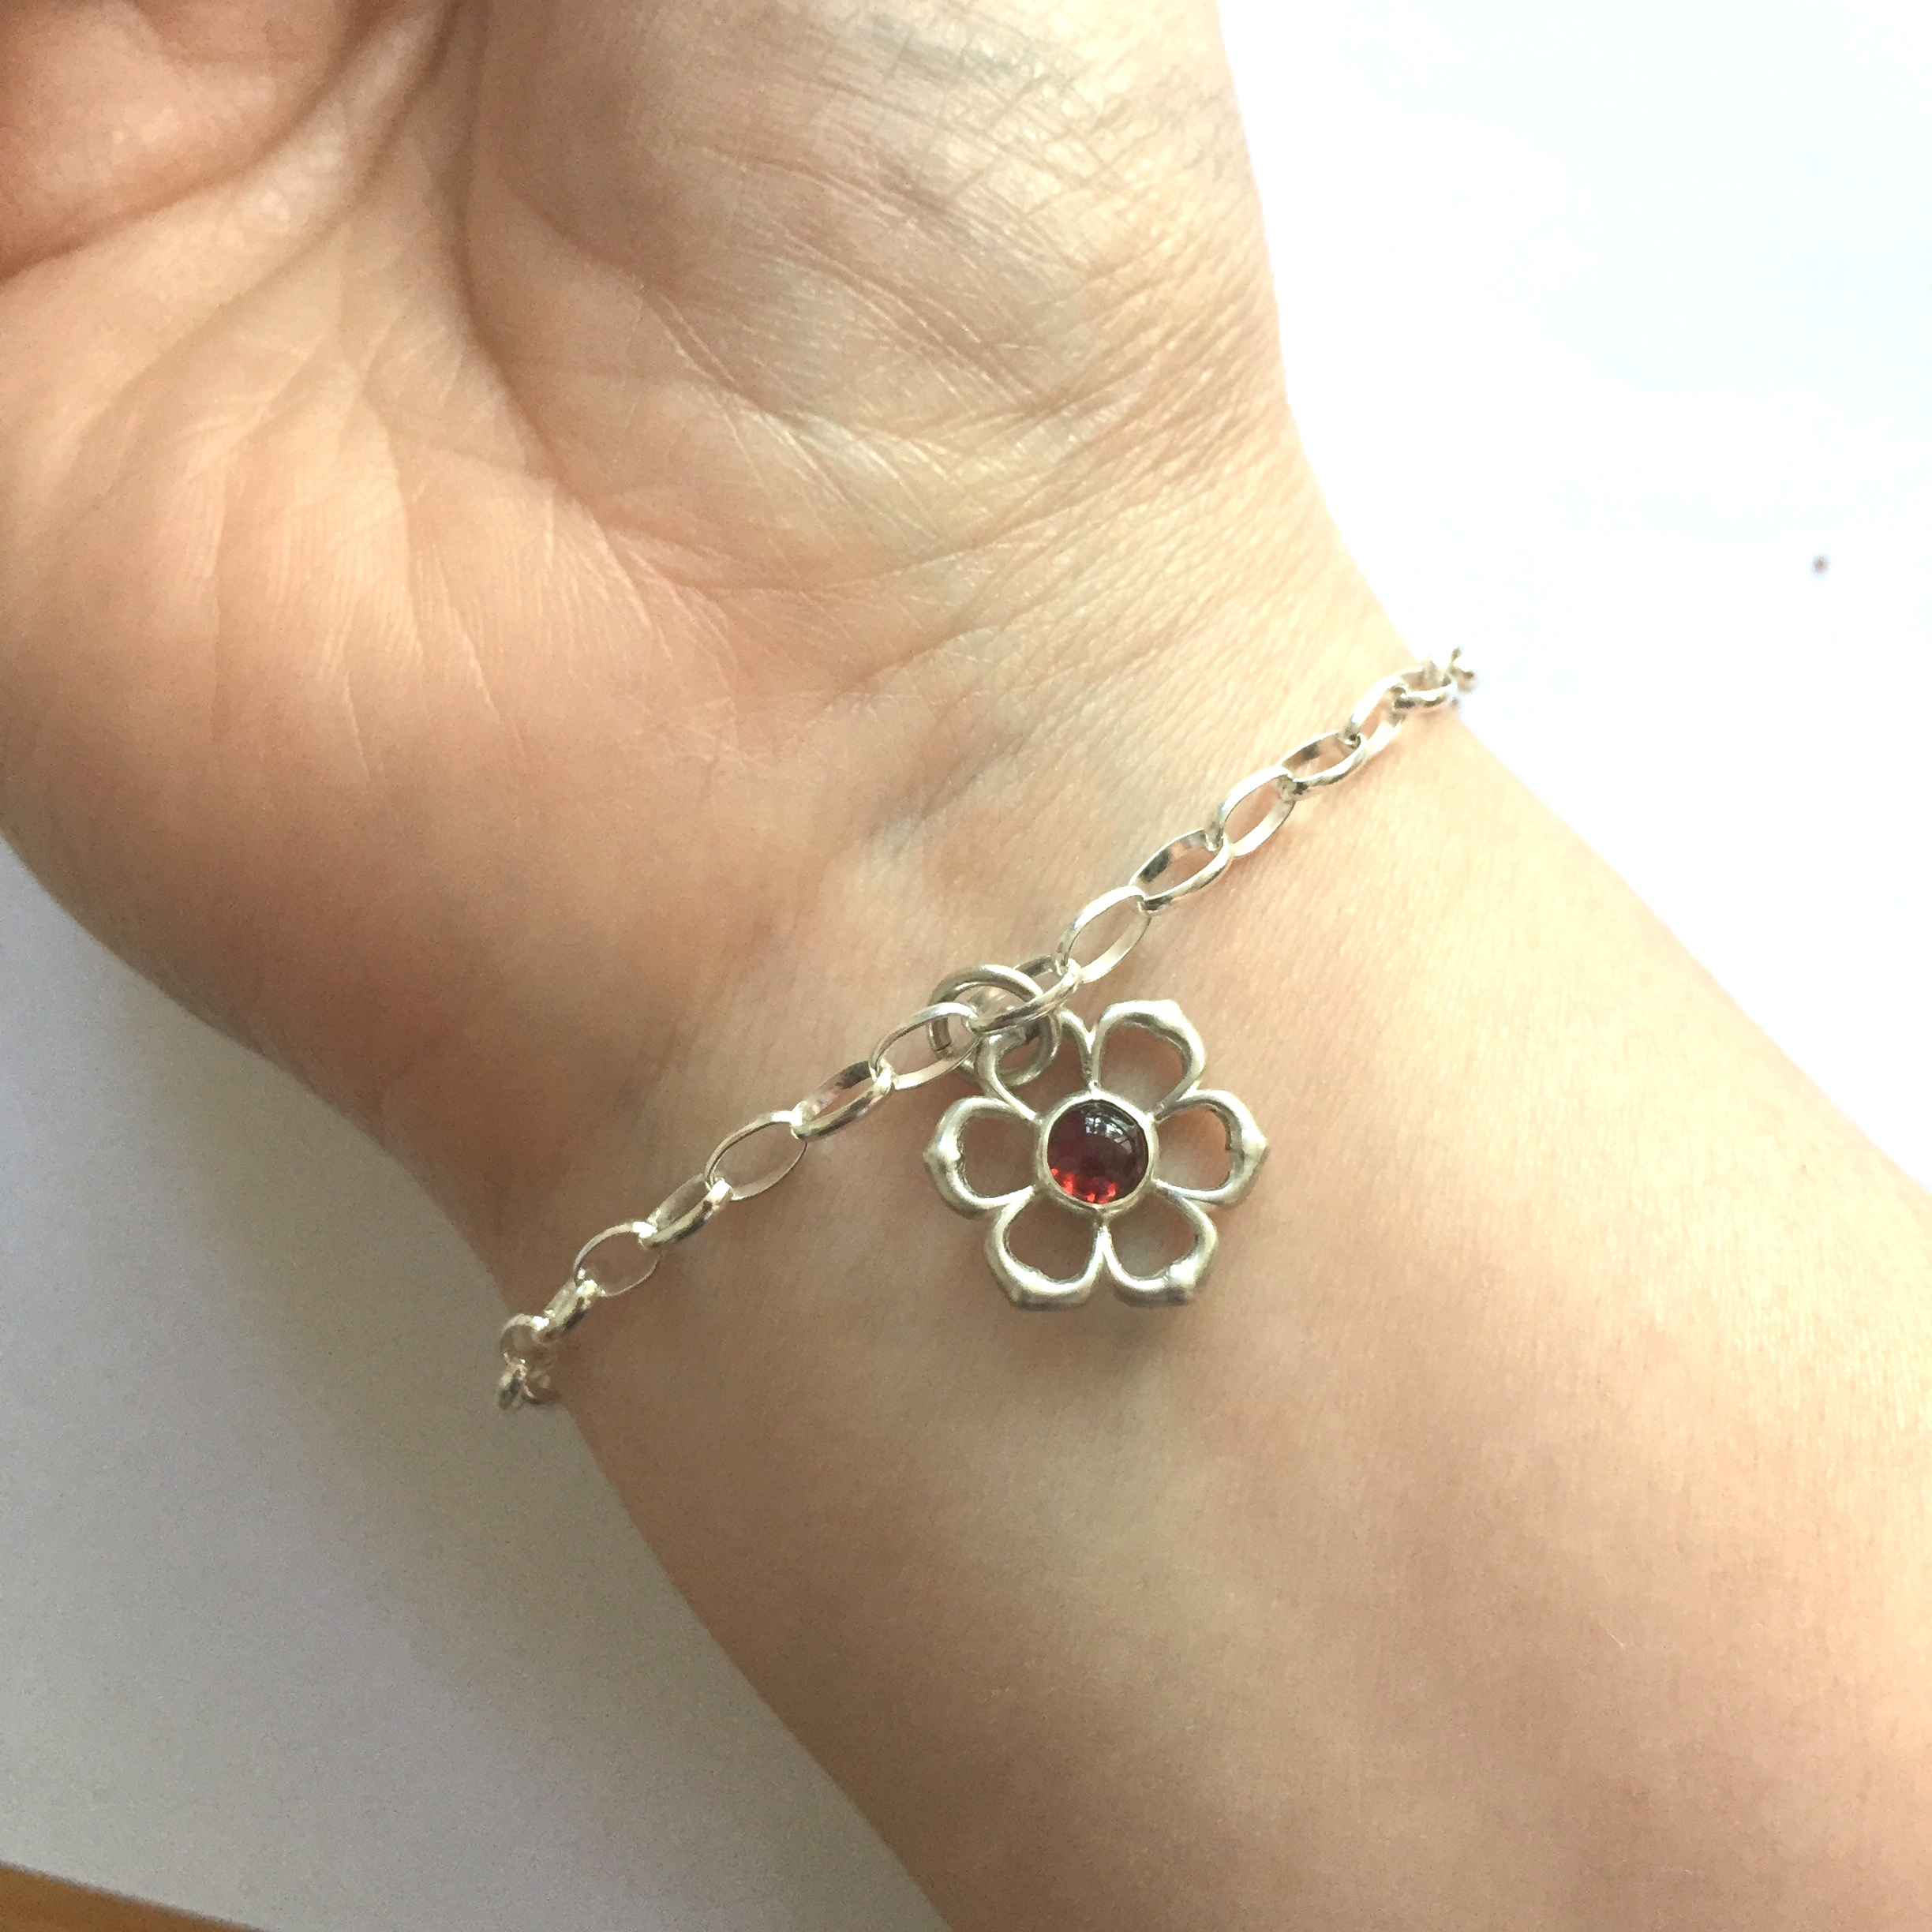 Jayne Turnbull - I just wanted to let you know how much I love my bracelet, it's absolutely perfect! I'm so so thrilled!